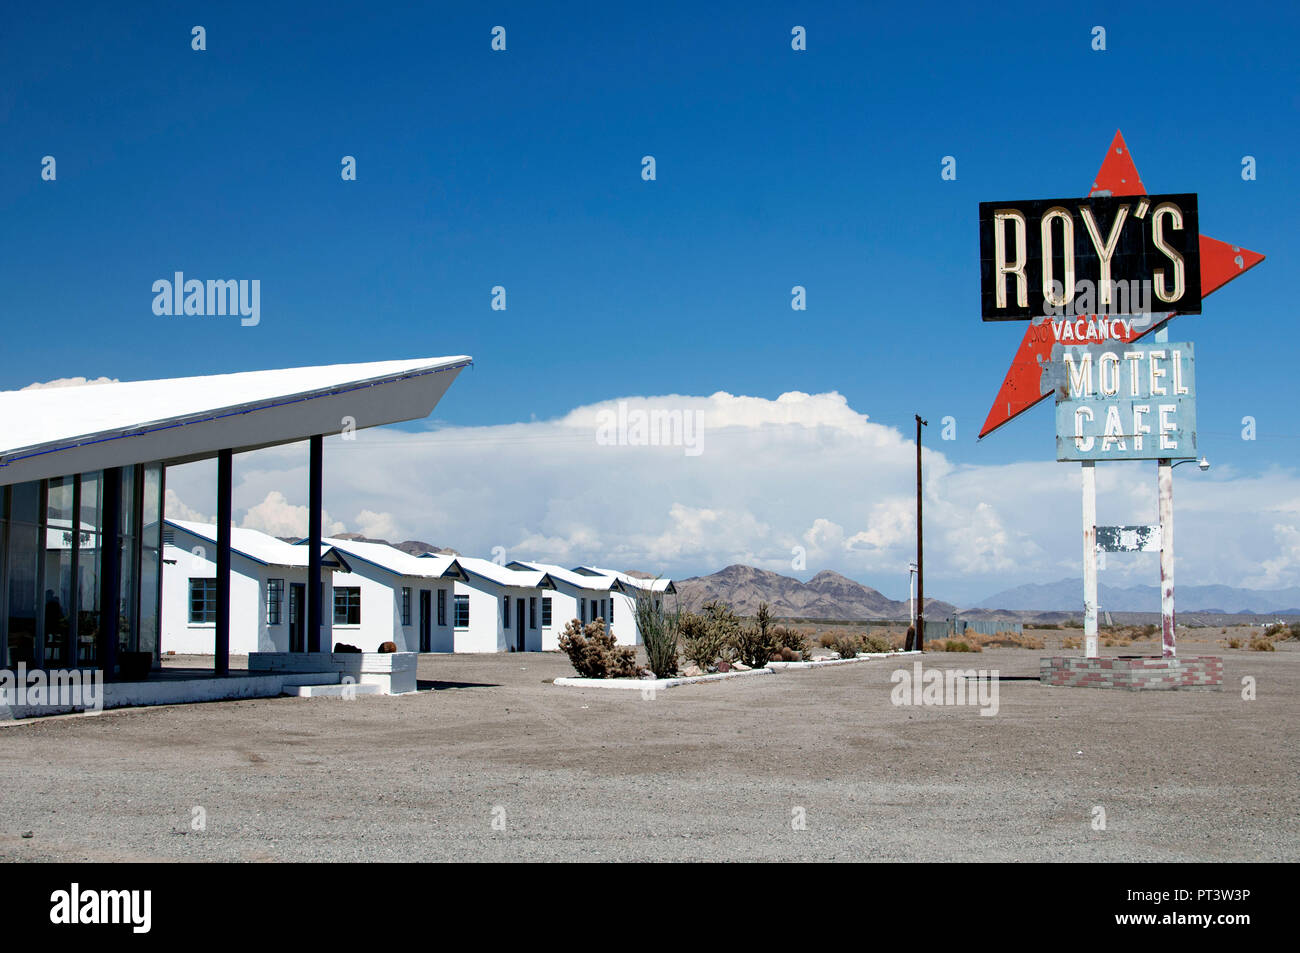 Amboy, USA - August, 2014. Roy's motel and cafe in Amboy, California. Famous road 66. - Stock Image